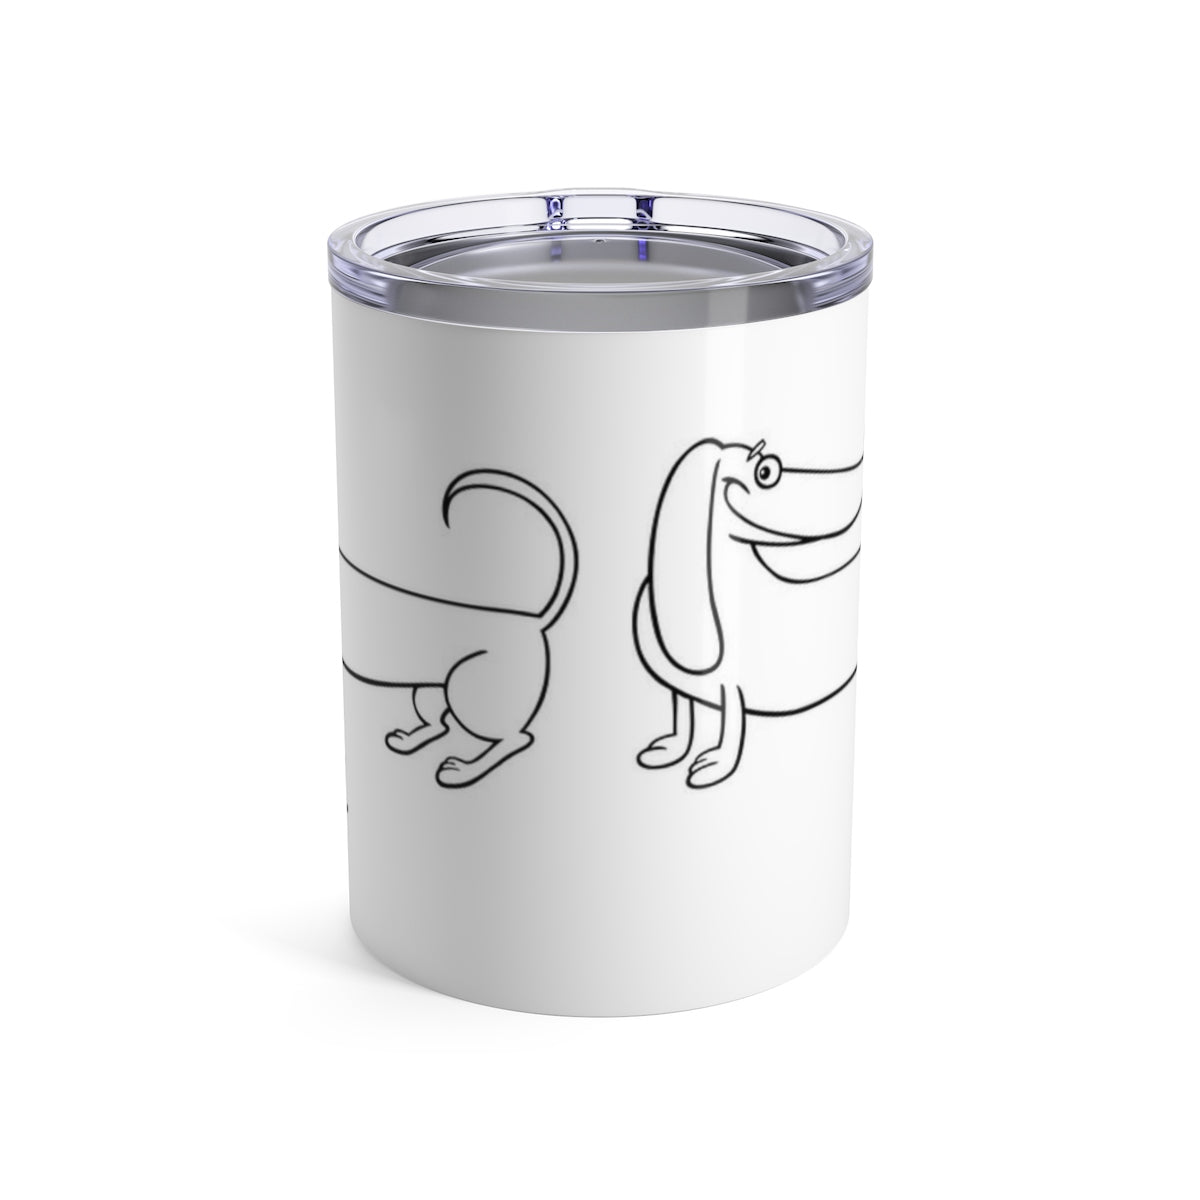 It's Been A Long Day Short Tumbler | Dachshund Gifts at The Nelson Company